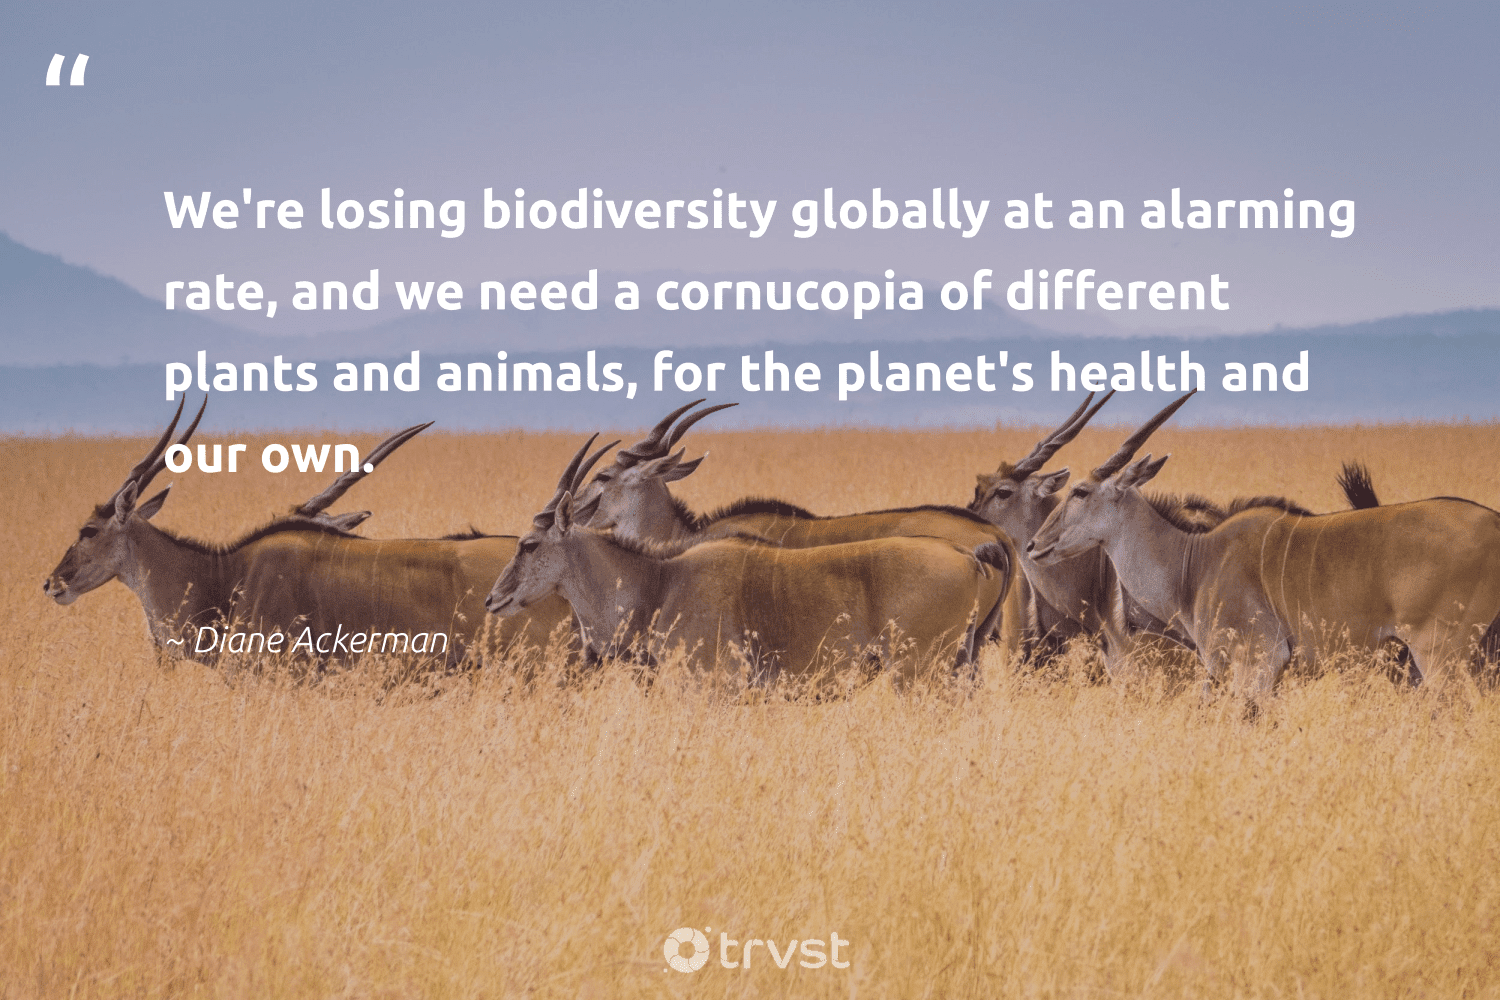 """""""We're losing biodiversity globally at an alarming rate, and we need a cornucopia of different plants and animals, for the planet's health and our own.""""  - Diane Ackerman #trvst #quotes #biodiversity #animals #health #environment #bigcat #nature #collectiveaction #conservation #fish #wildlifephotography"""